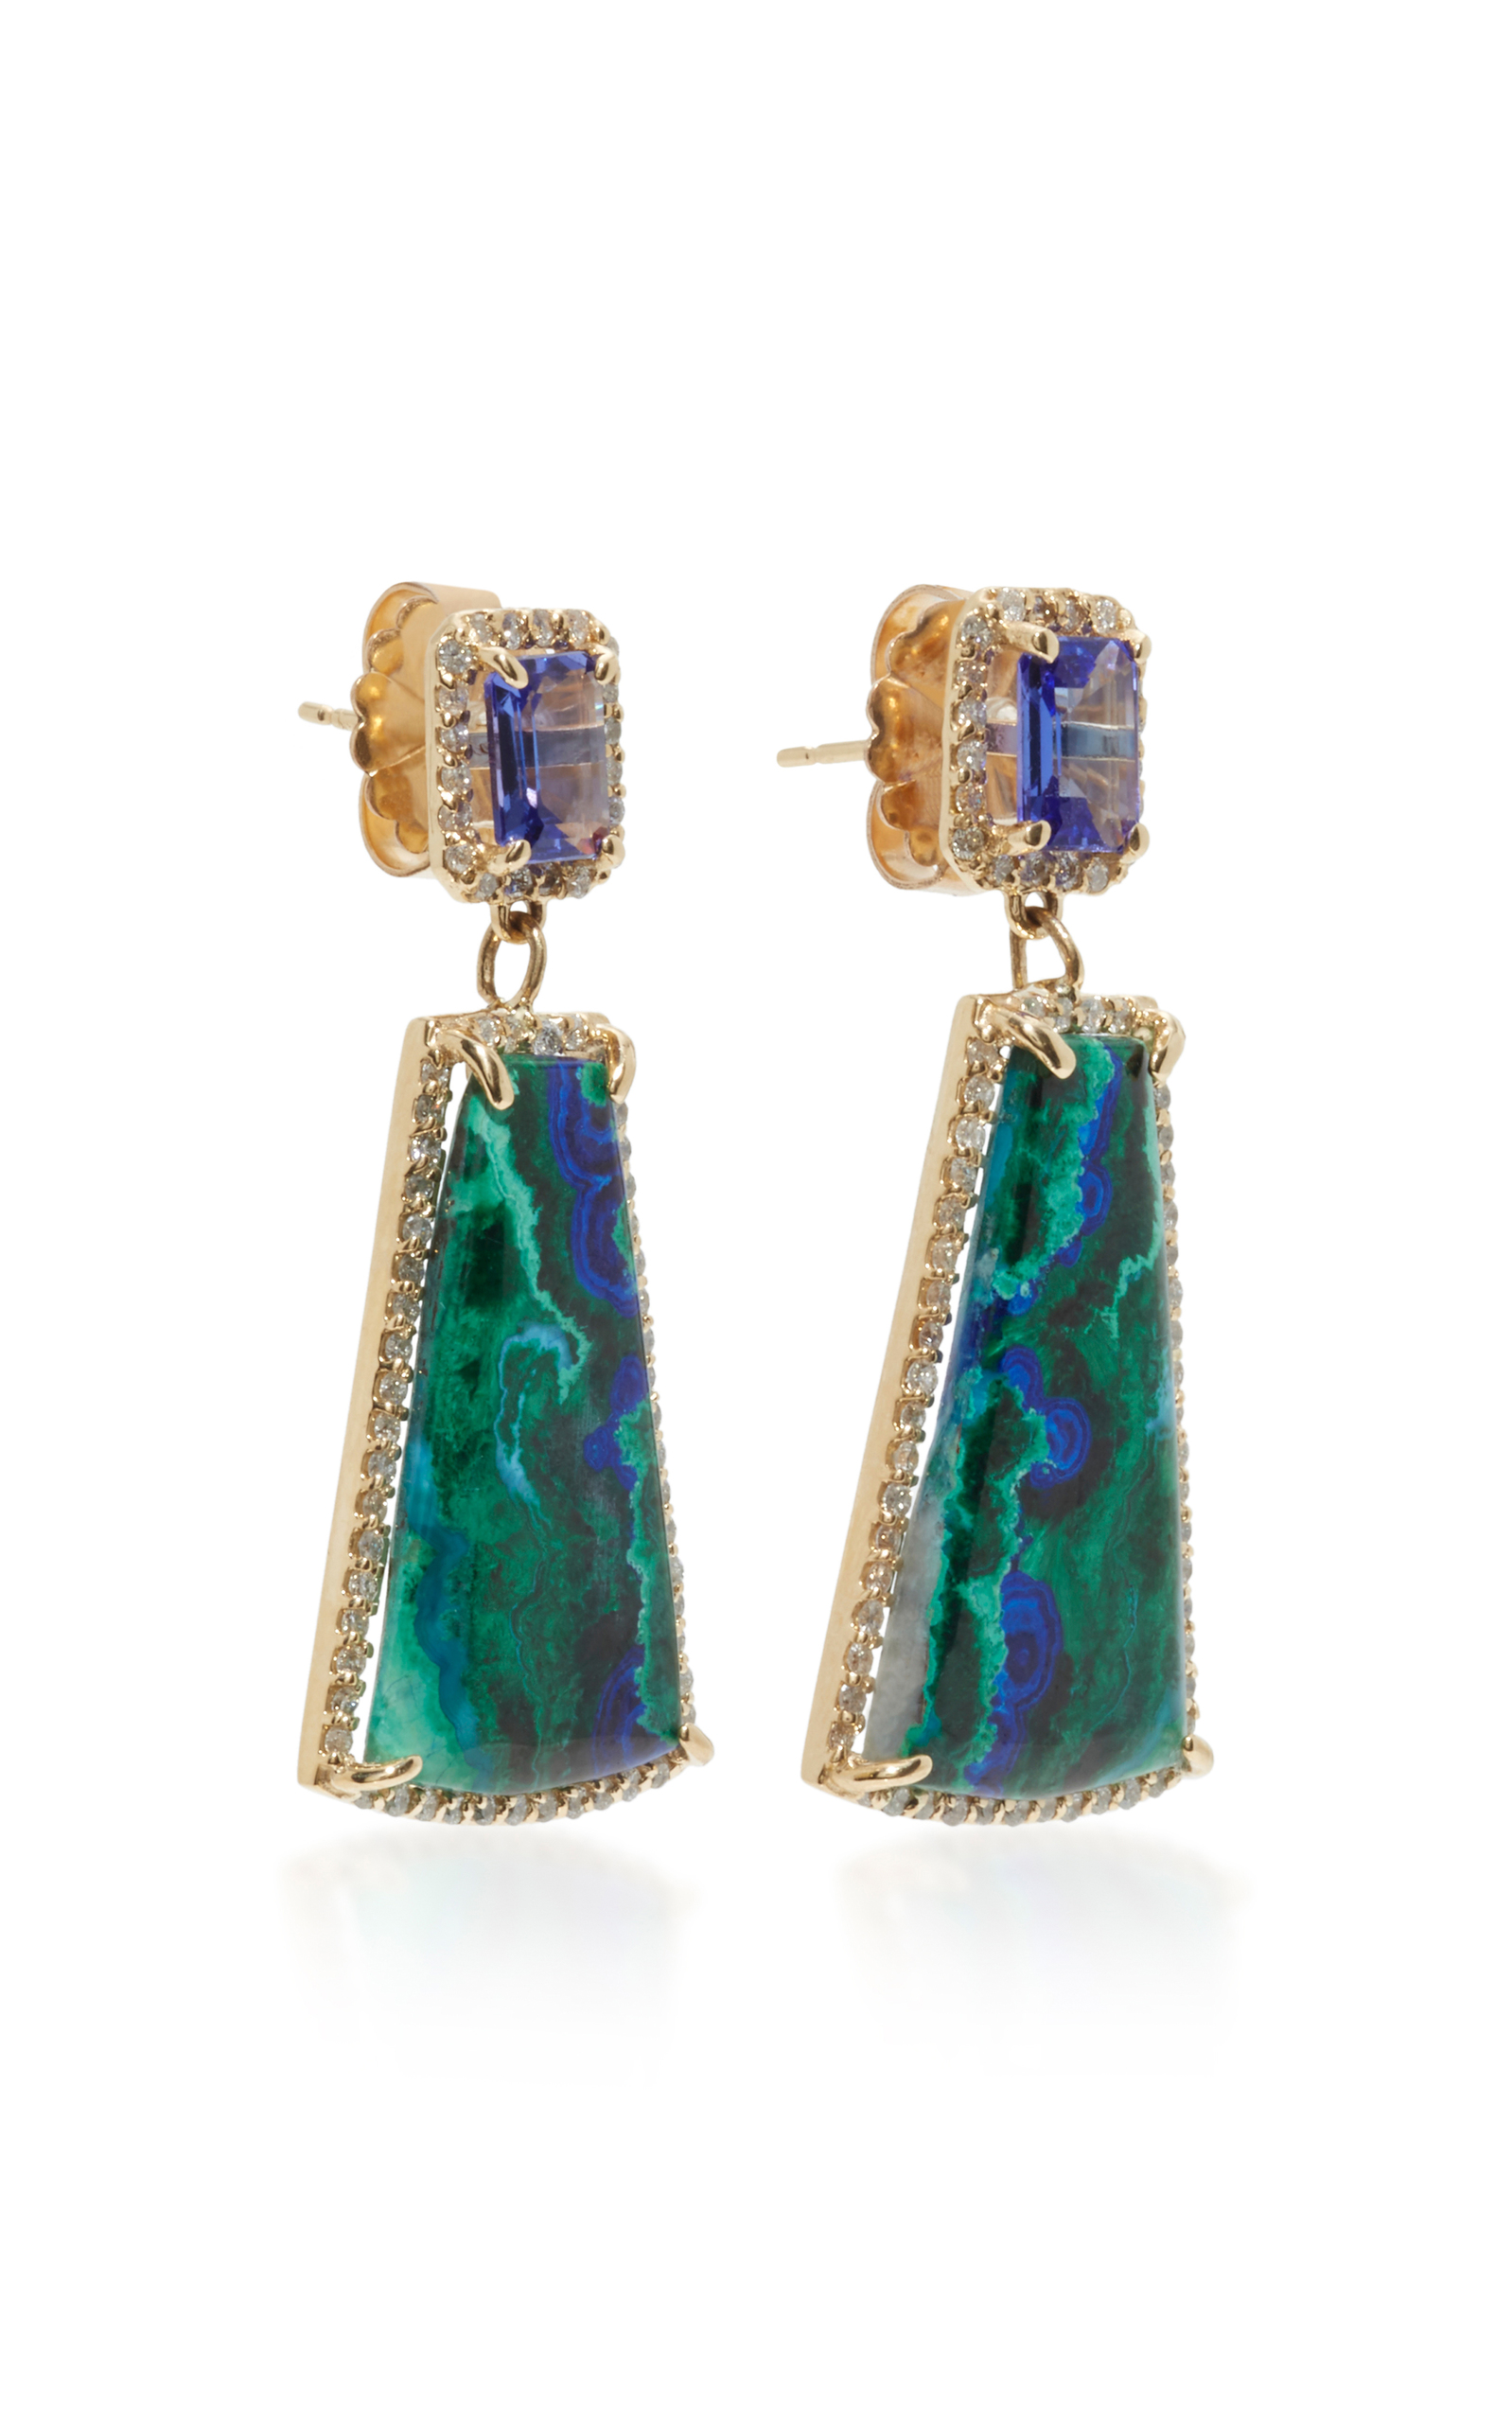 store rock earrings david webb unusual crystal